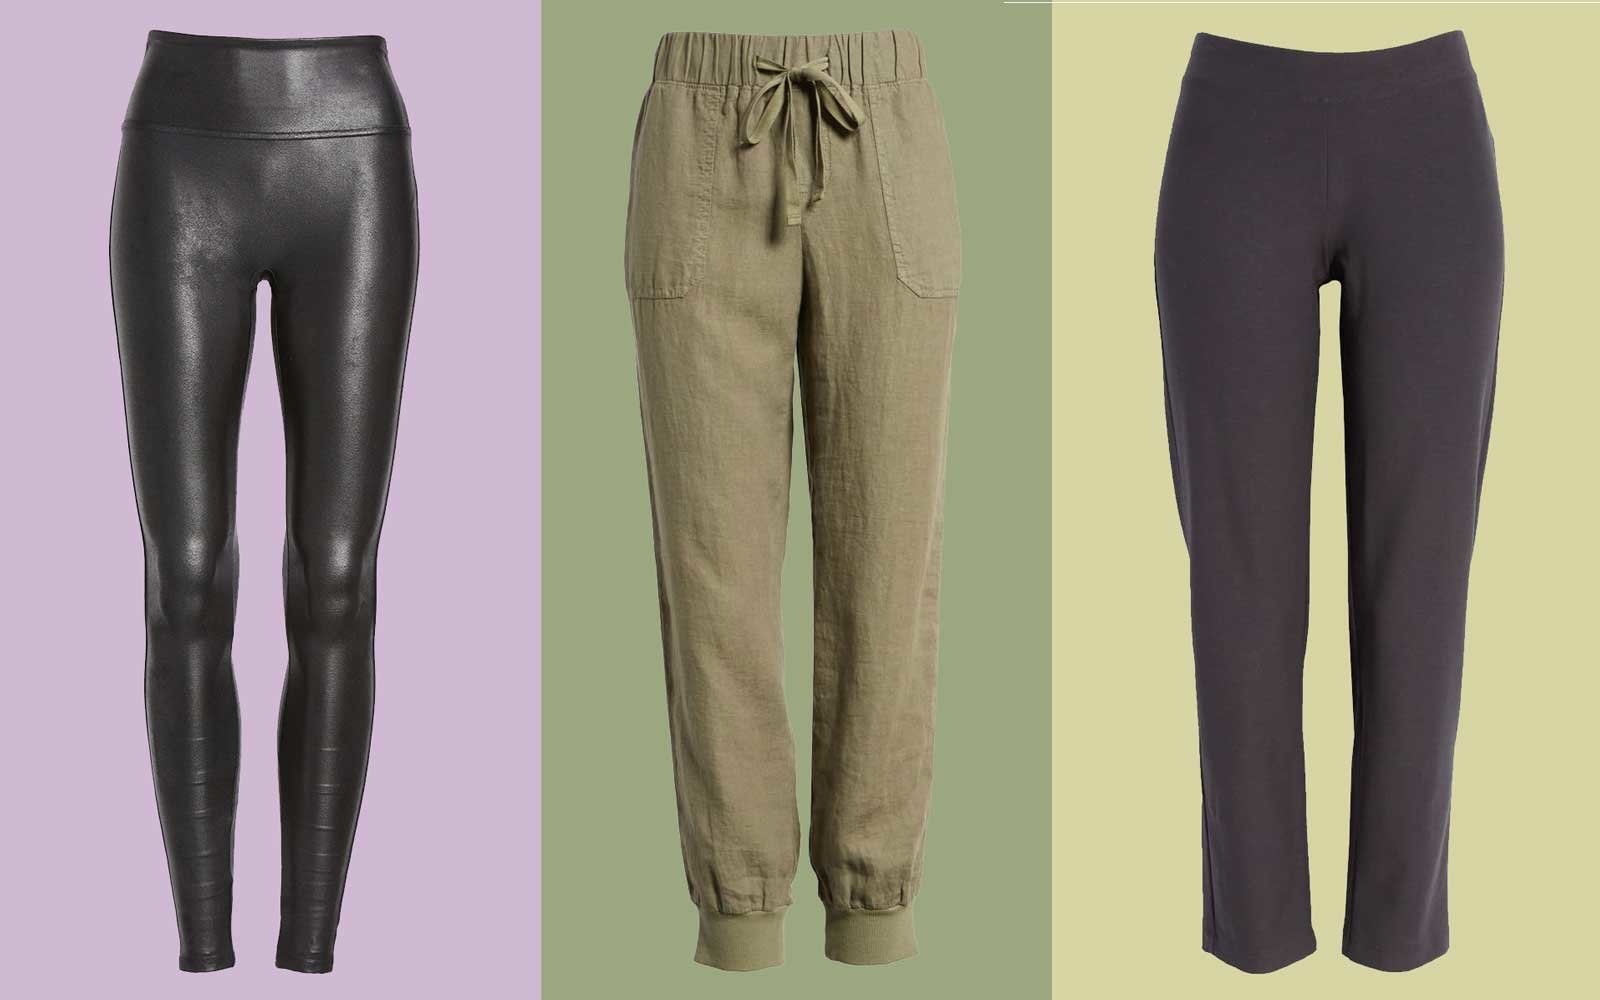 comfy leggings and pants for travel